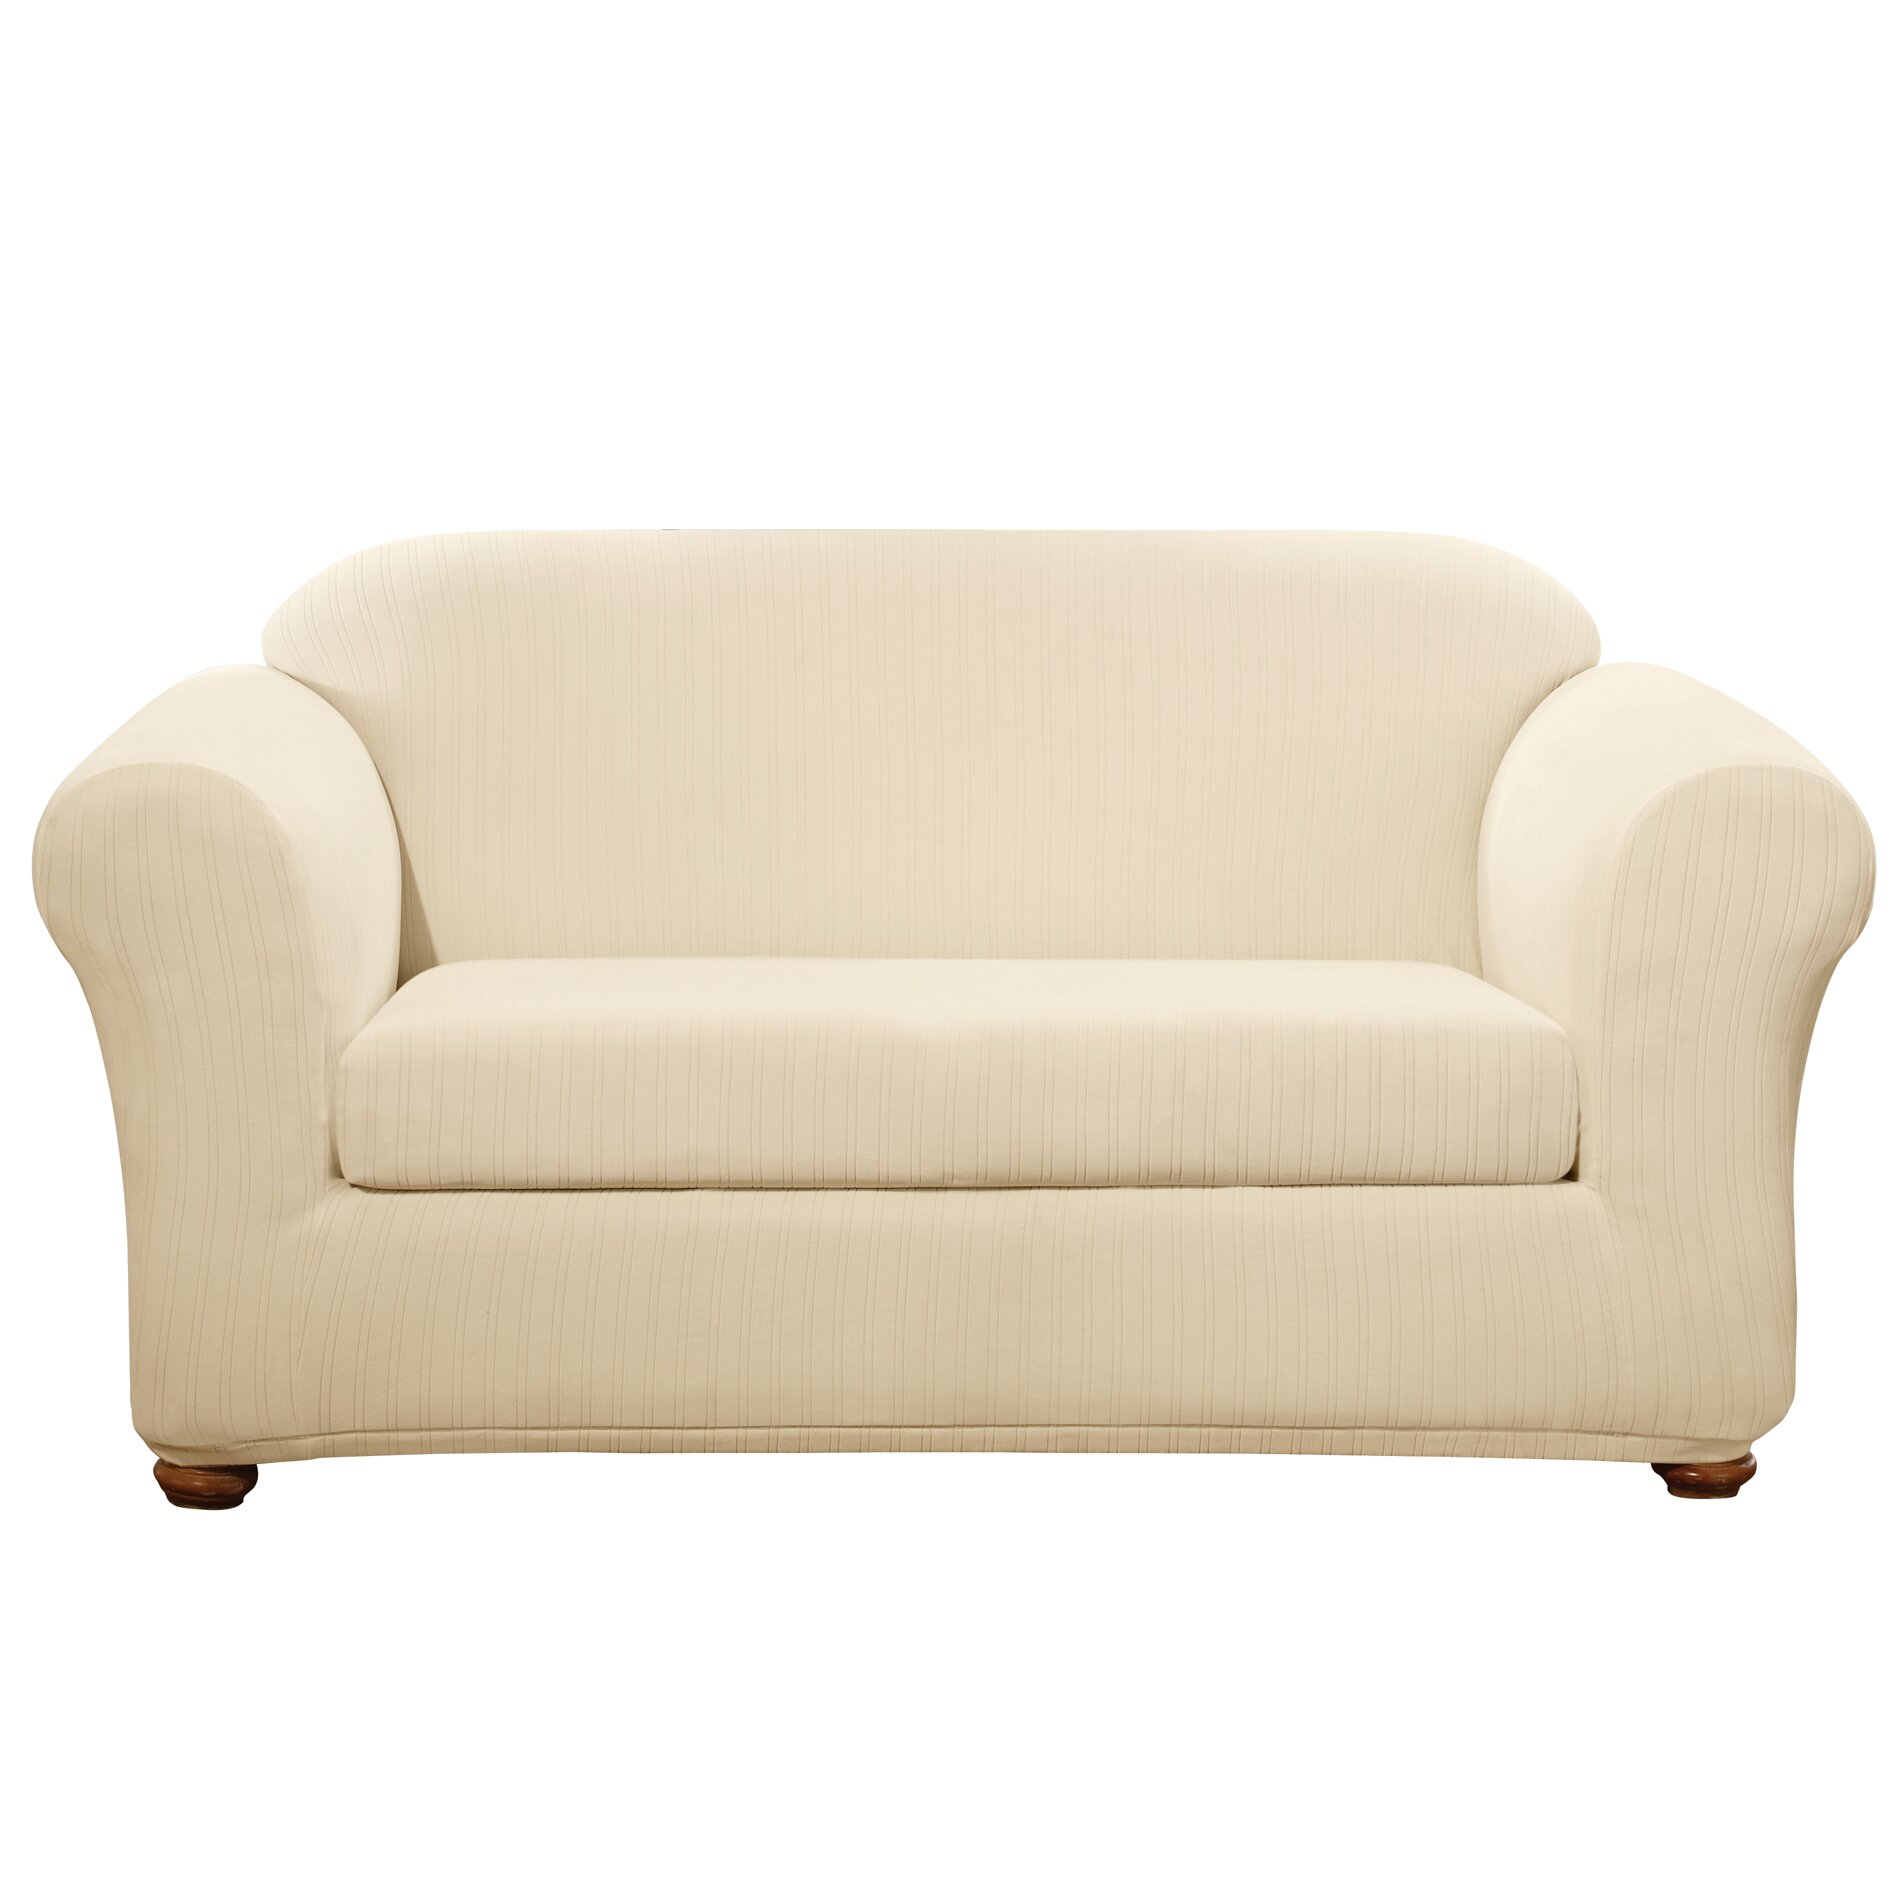 Sure fit stretch pinstripe loveseat slipcover reviews wayfair Loveseat slipcover